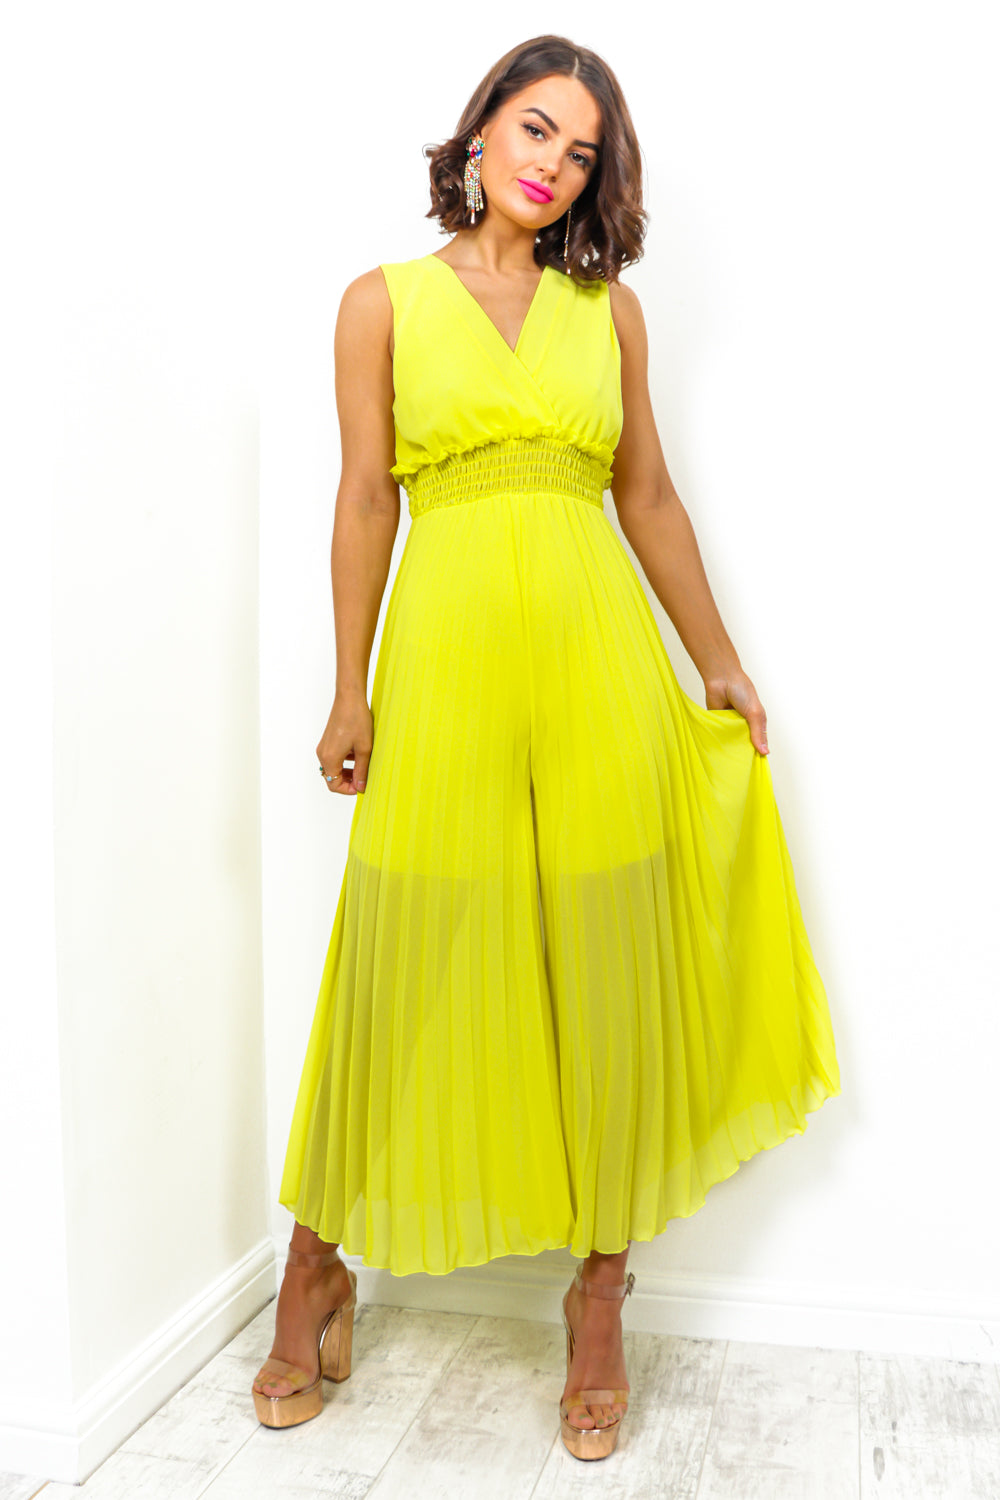 Flare She Goes - Jumpsuit In LEMON